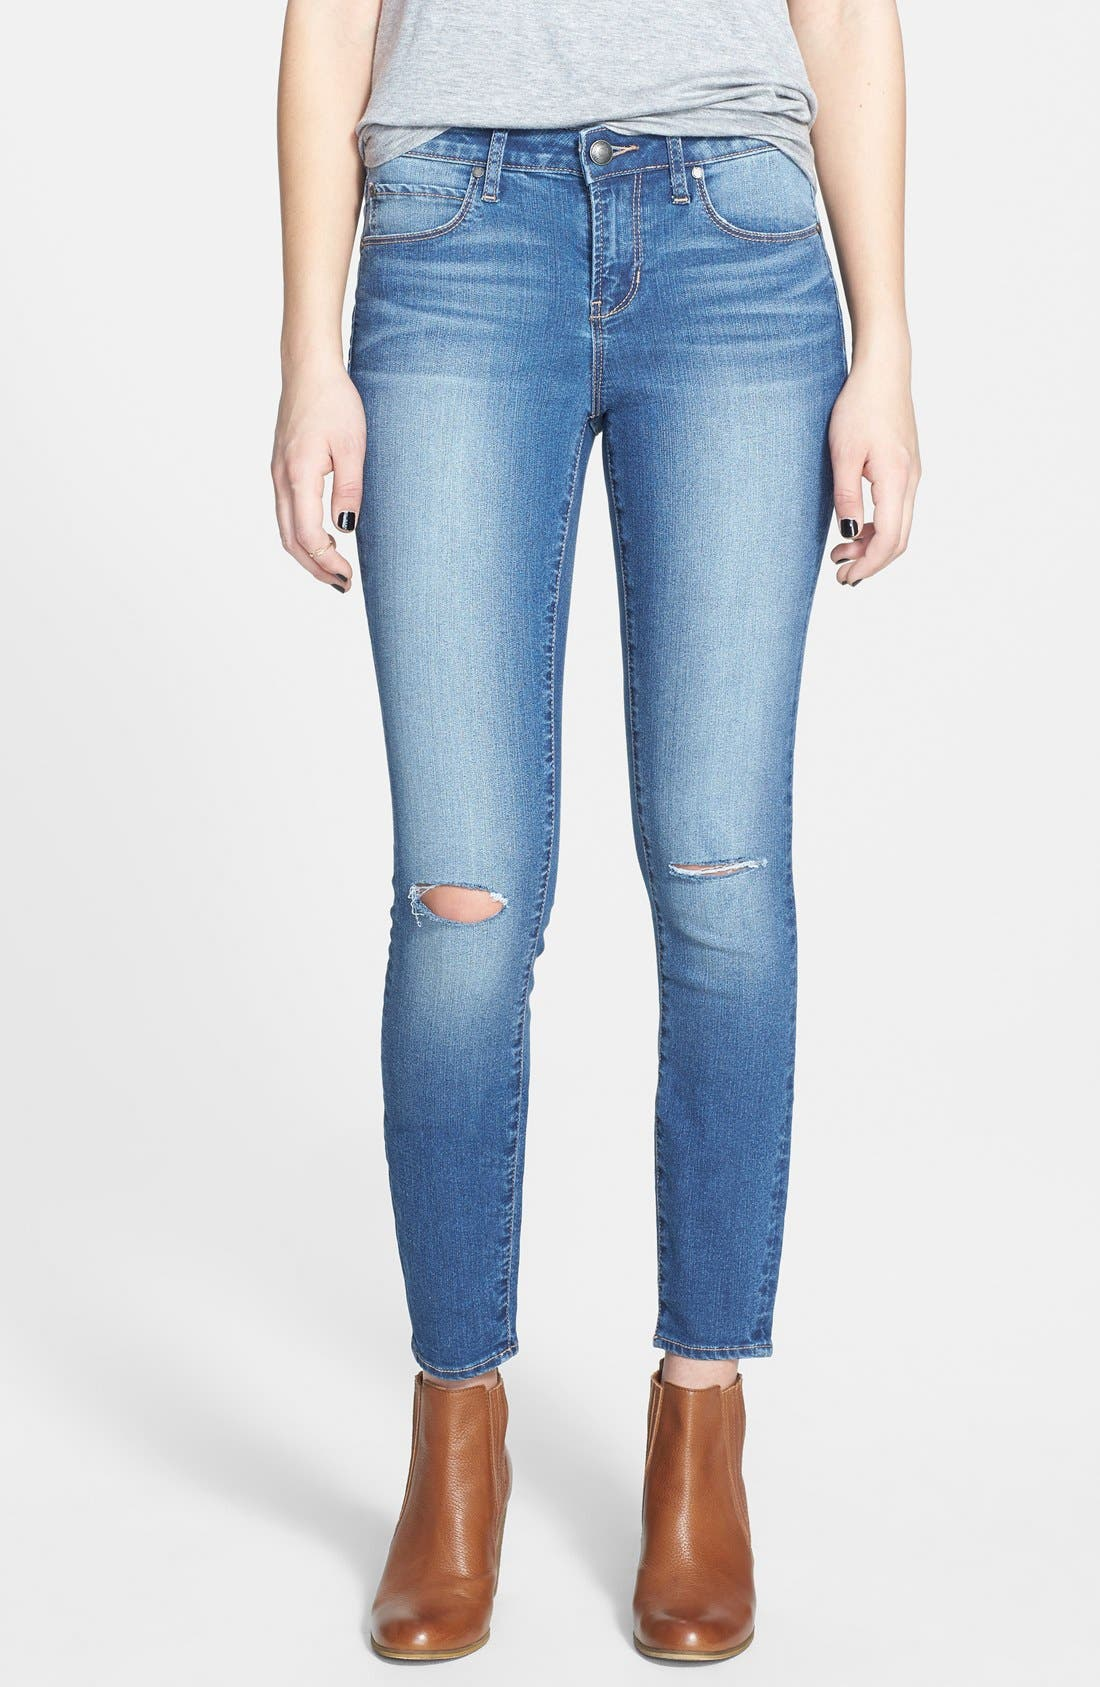 Alternate Image 1 Selected - Articles of Society Destroyed Skinny Jeans (Medium)